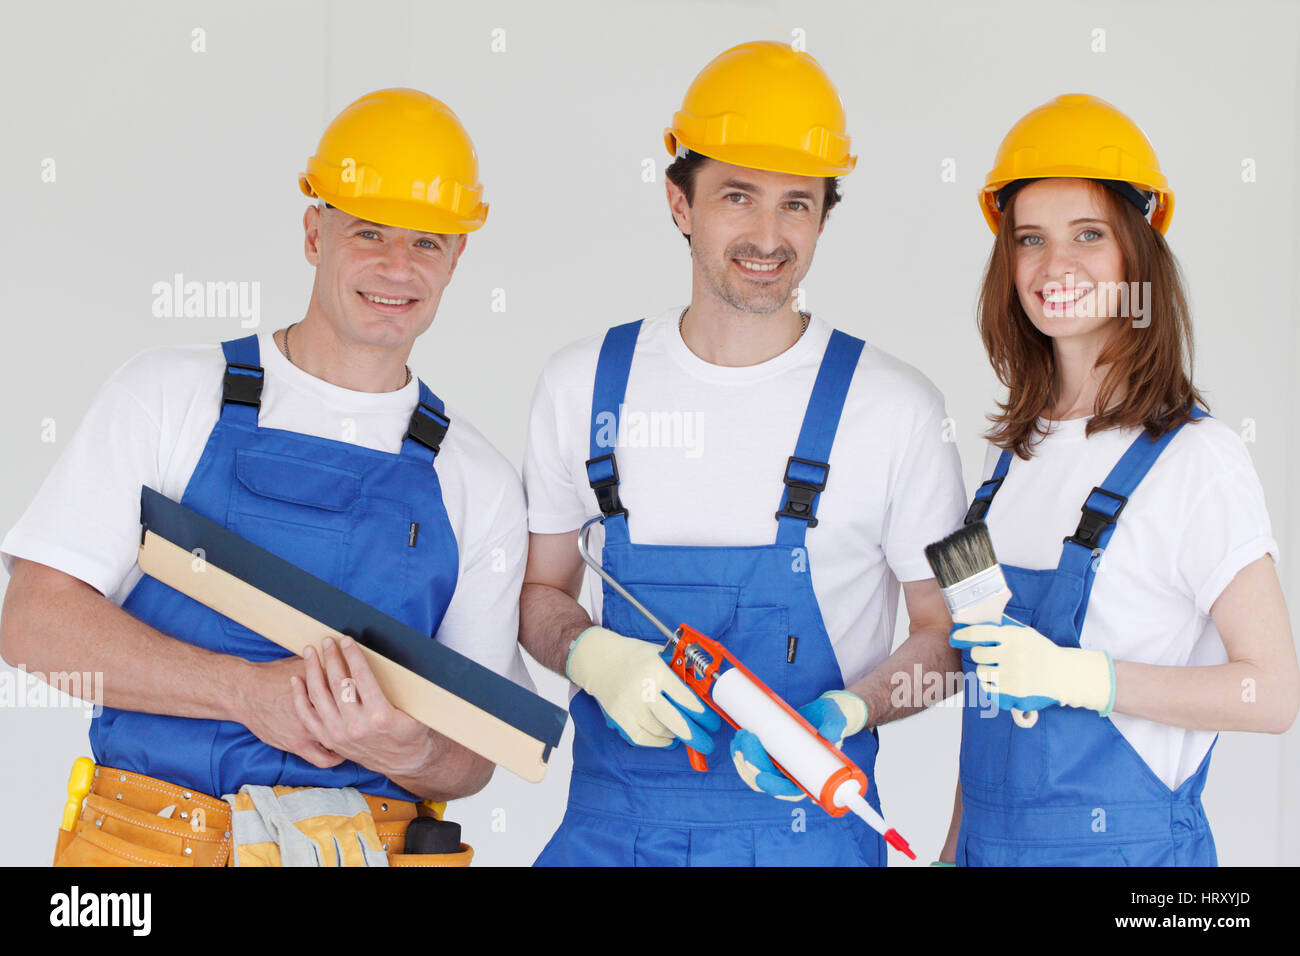 Team of cheerful workers in uniform and hardhats with tools - Stock Image